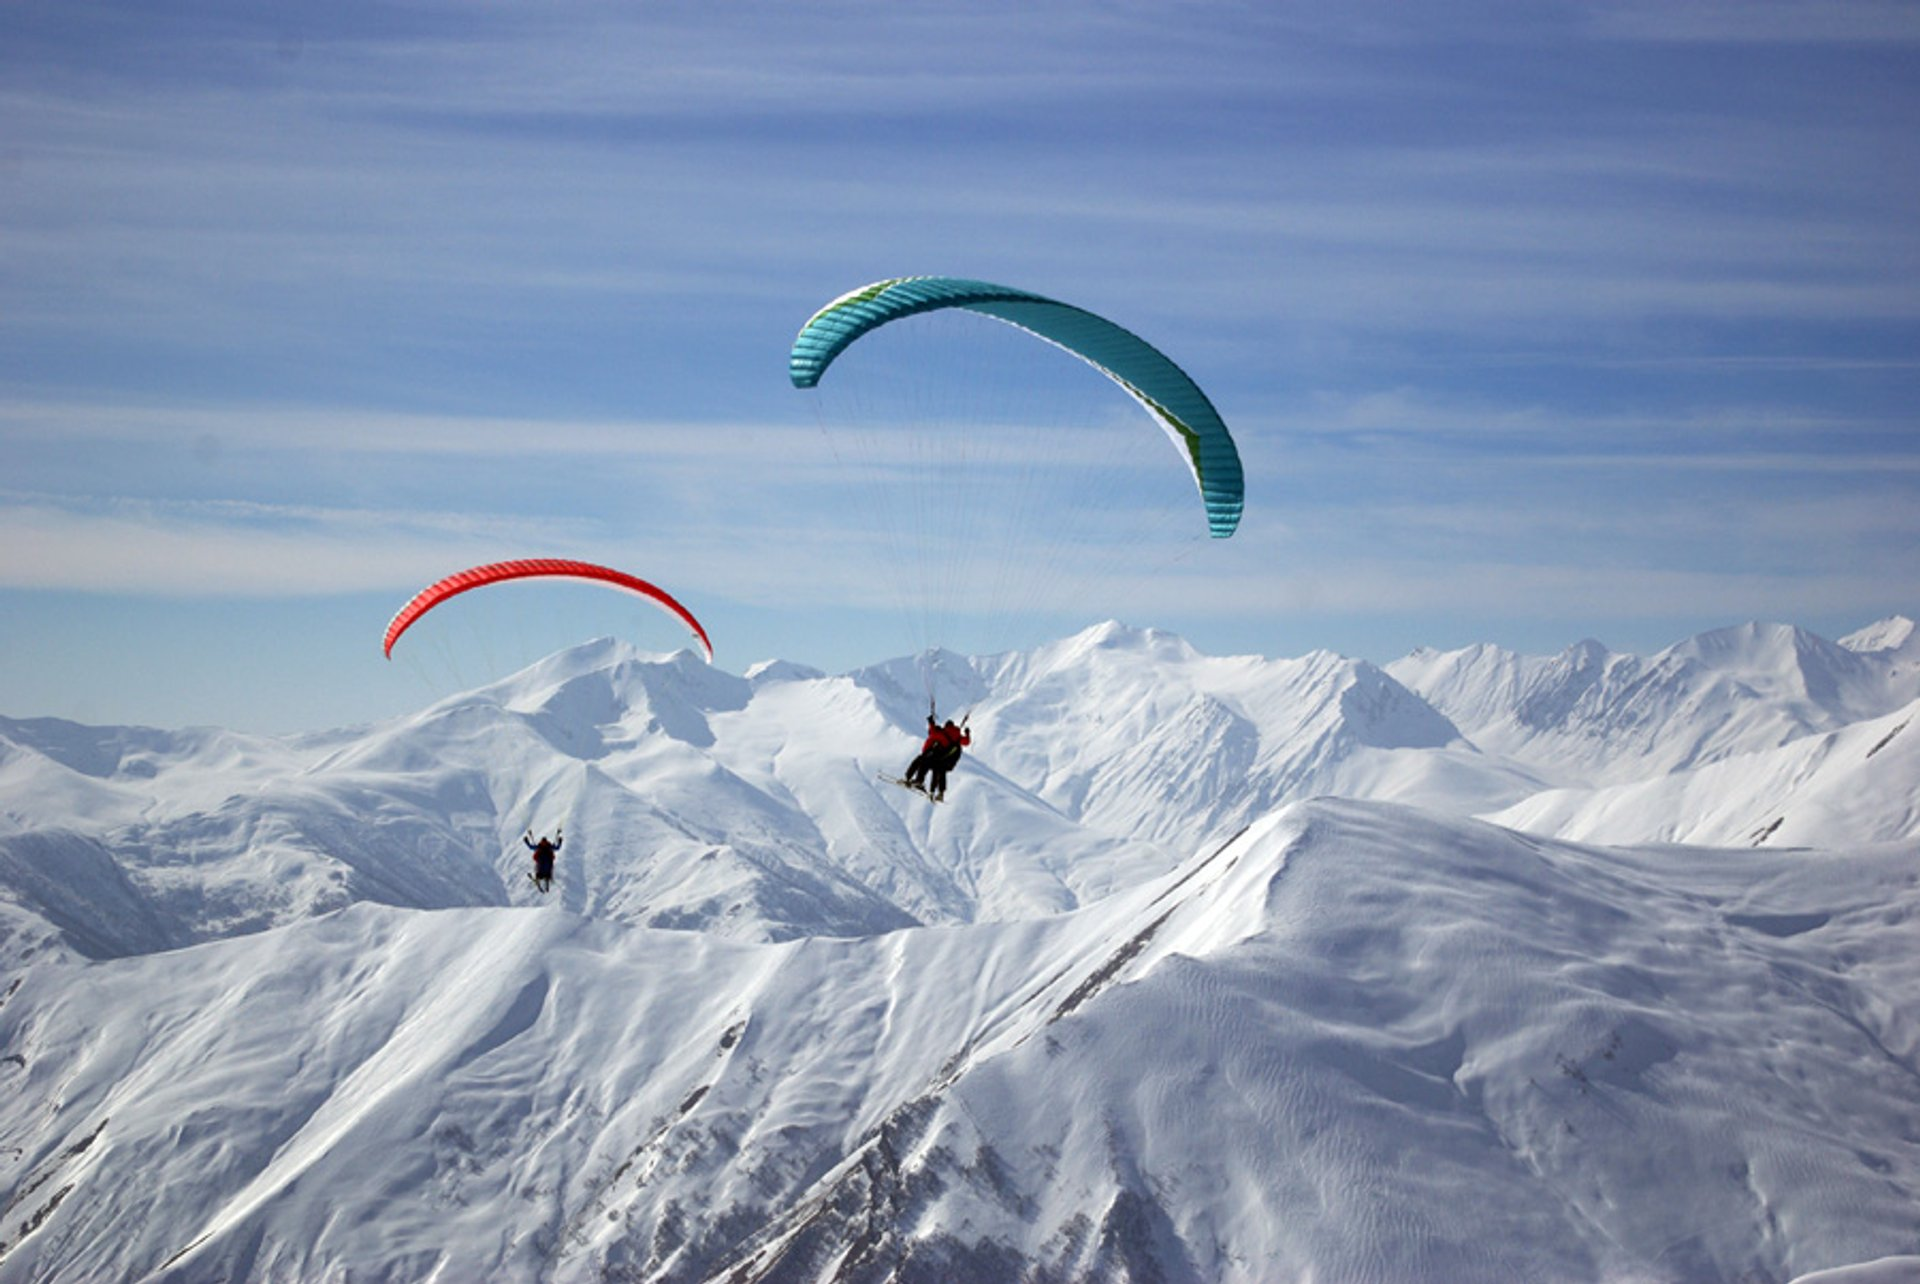 Paragliding Winter Season in Georgia 2020 - Best Time